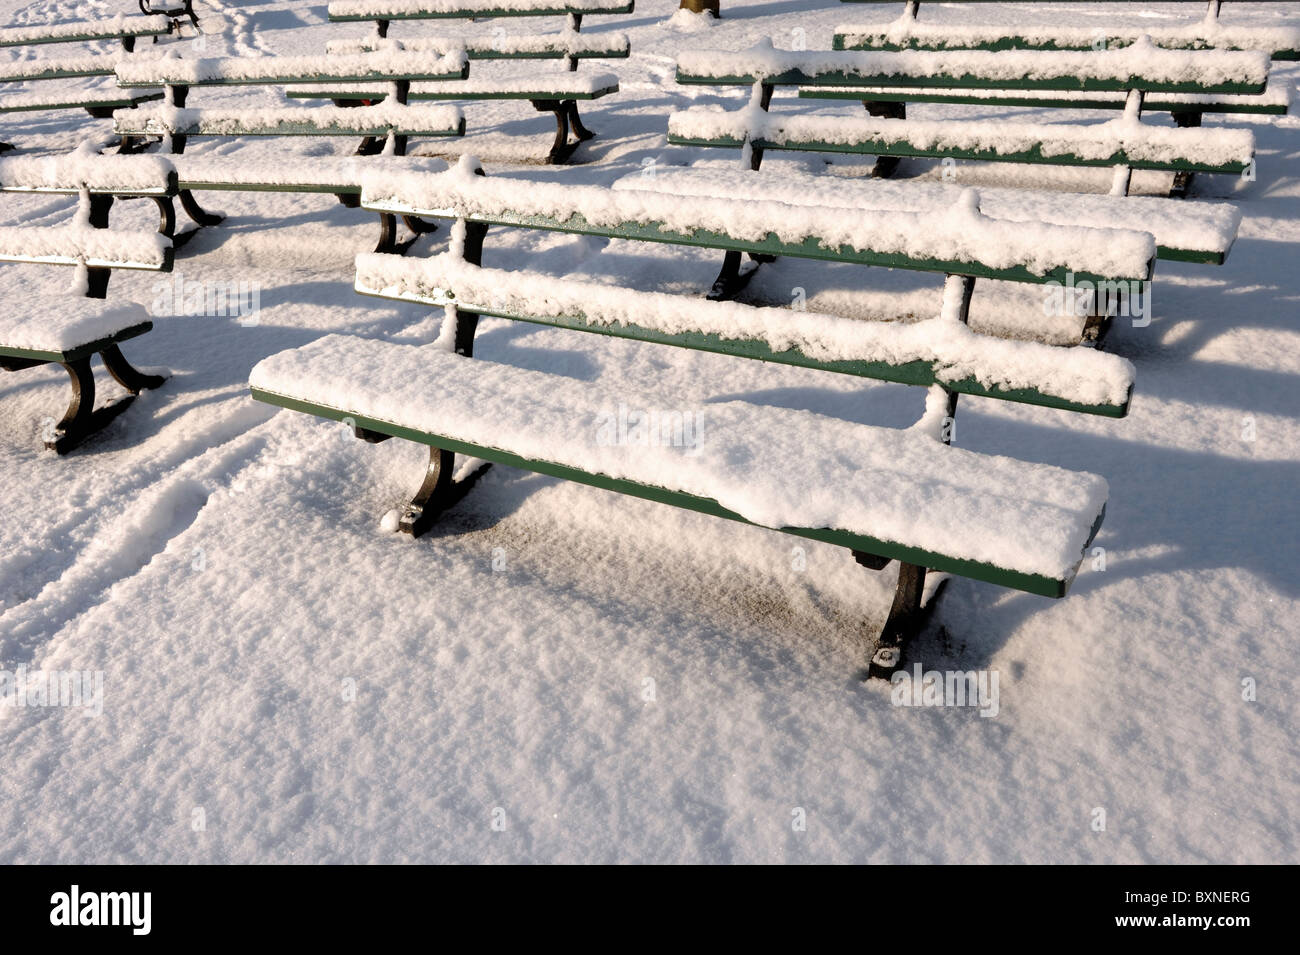 Snow covered benches - Stock Image